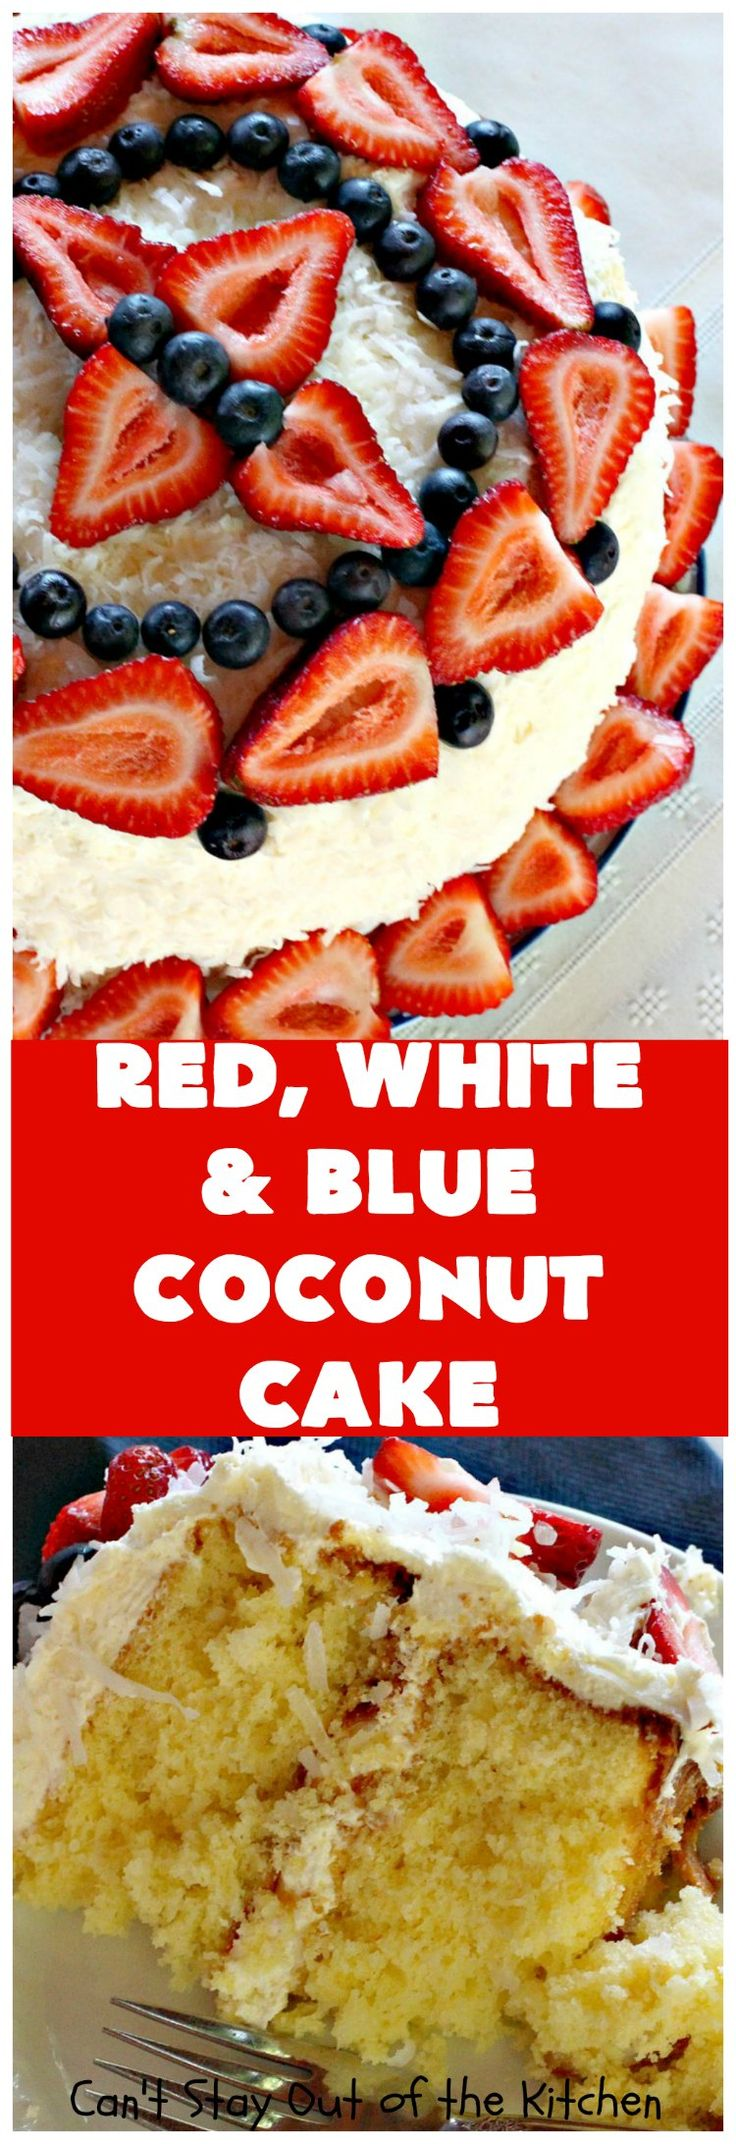 Red, White & Blue Coconut Cake   Can't Stay Out of the Kitchen   this fabulous #coconut #cake is perfect for the #FourthofJuly. Both the cake and the icing have coconut. Amazing #dessert